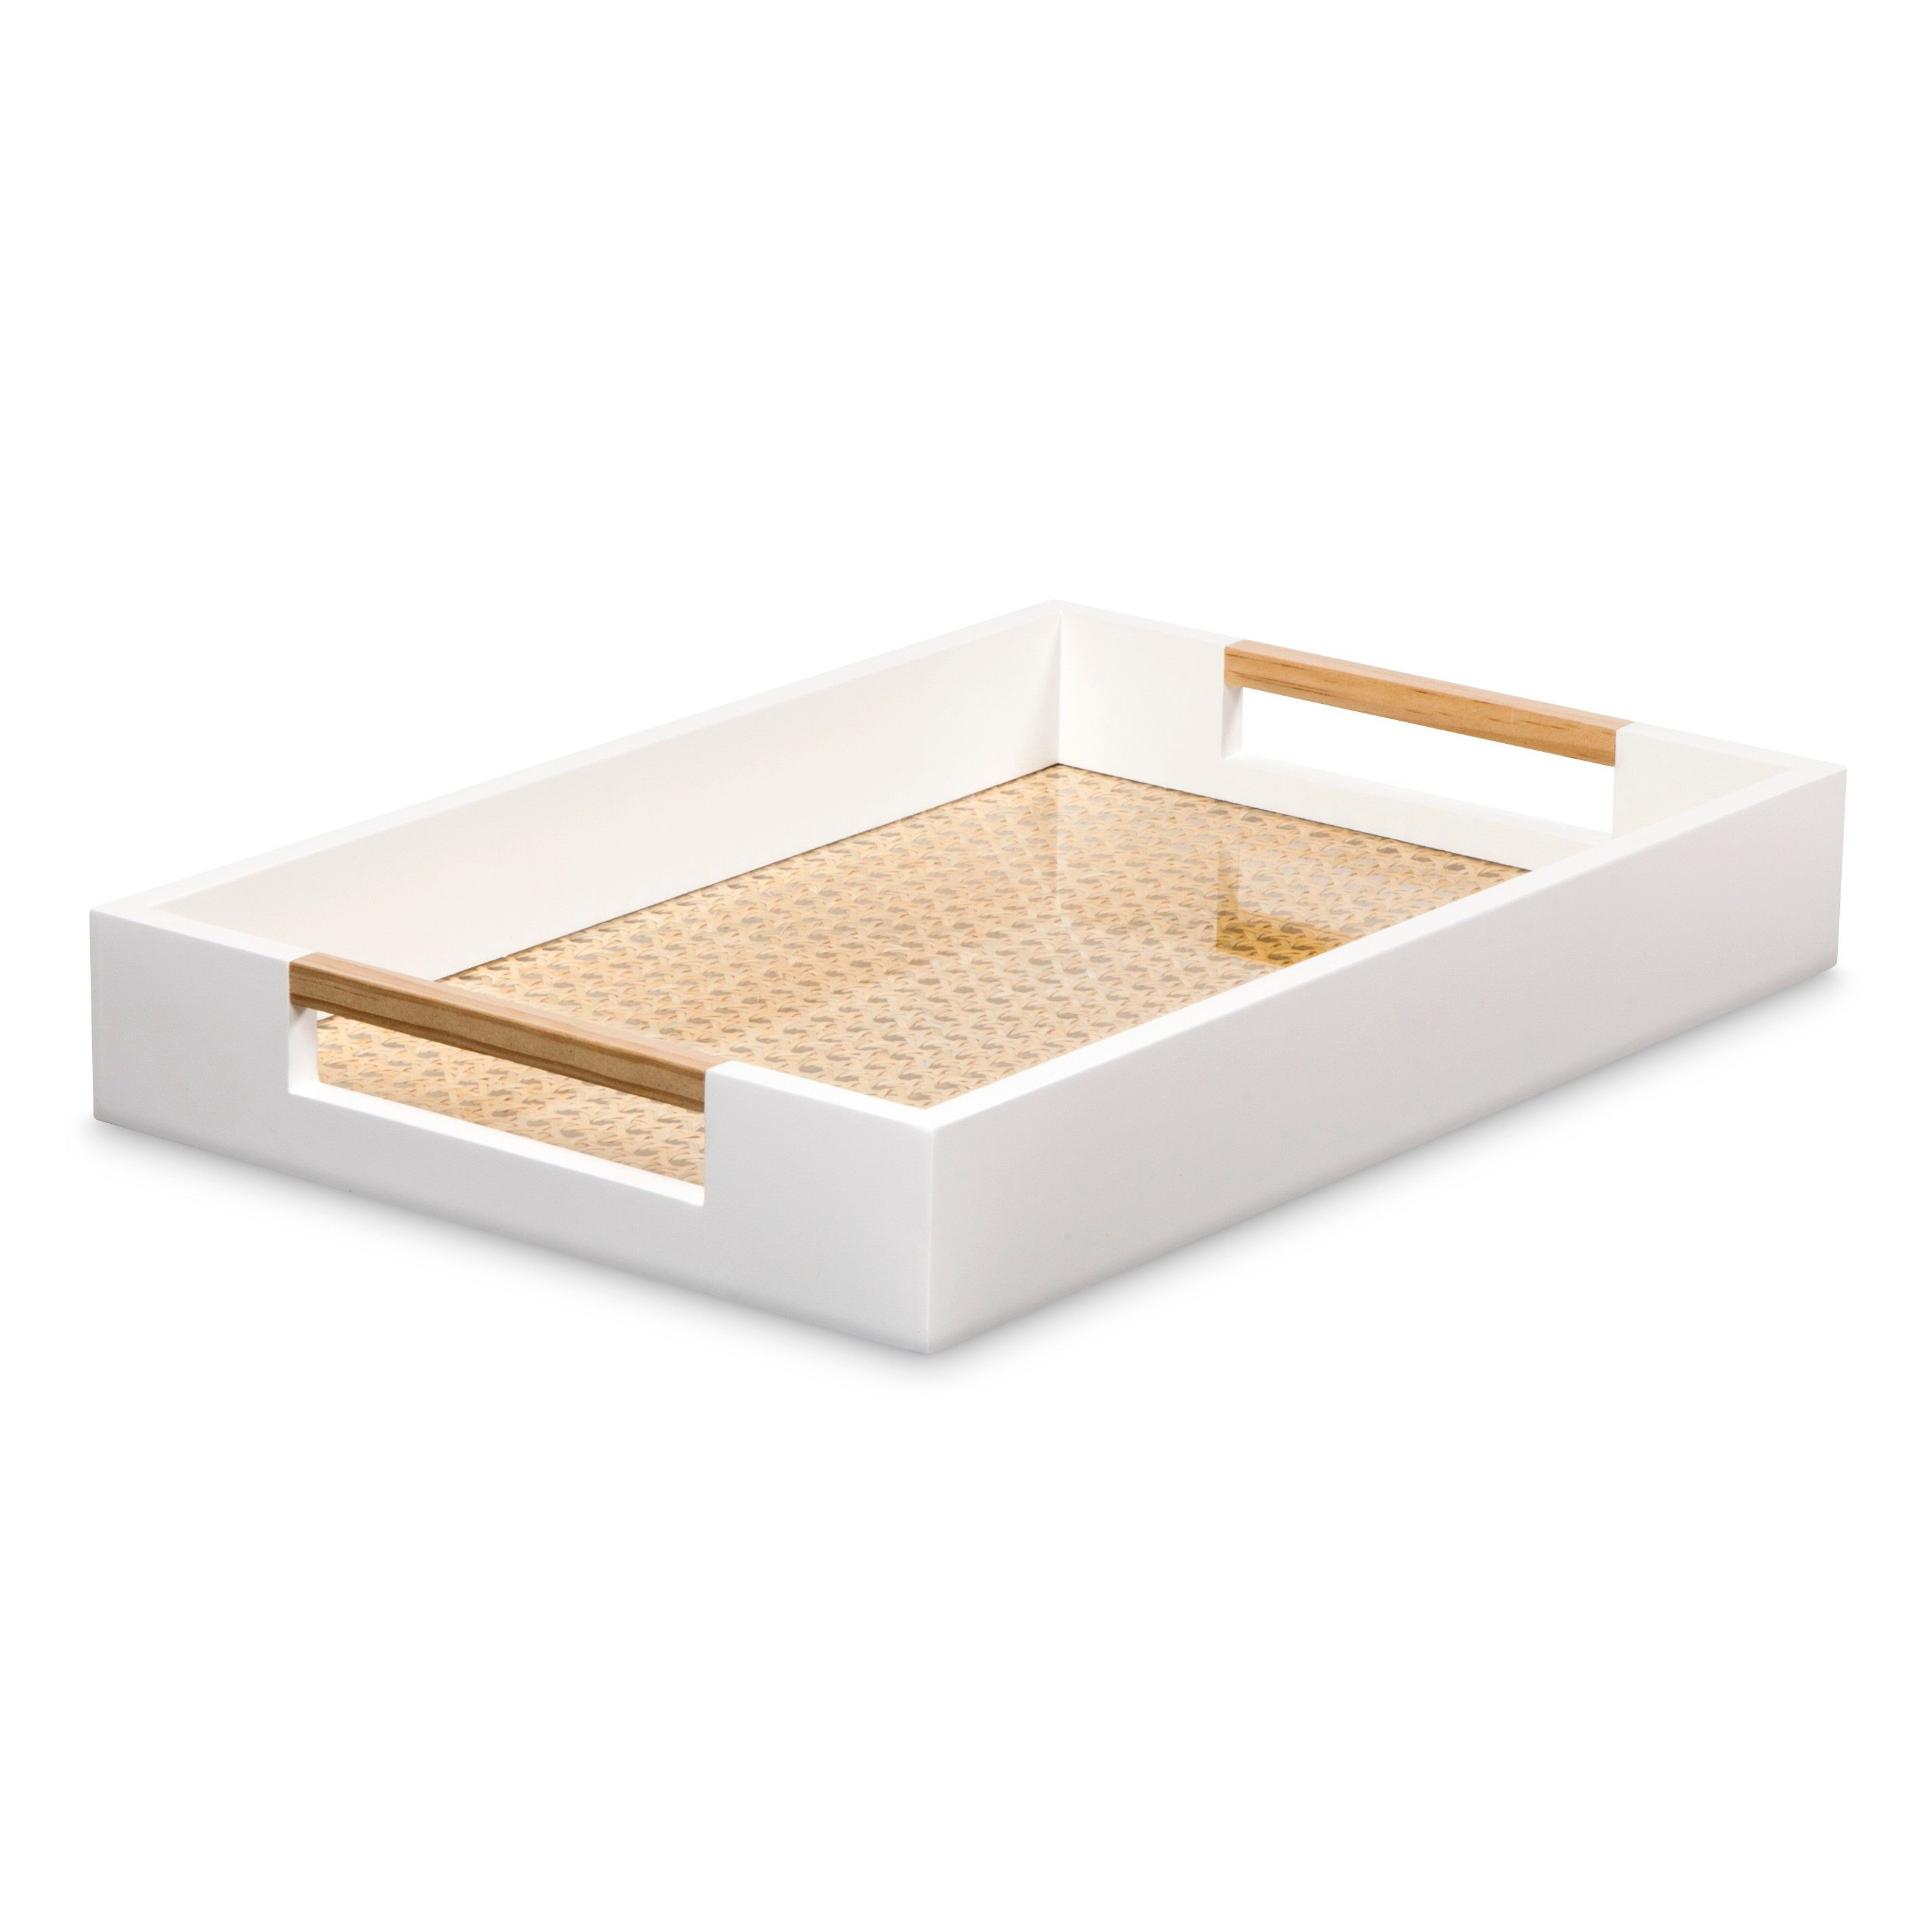 White Decorative Tray Alluring Threshold™ Decorative Tray With Cane Detail  White  Target  Bed Decorating Inspiration